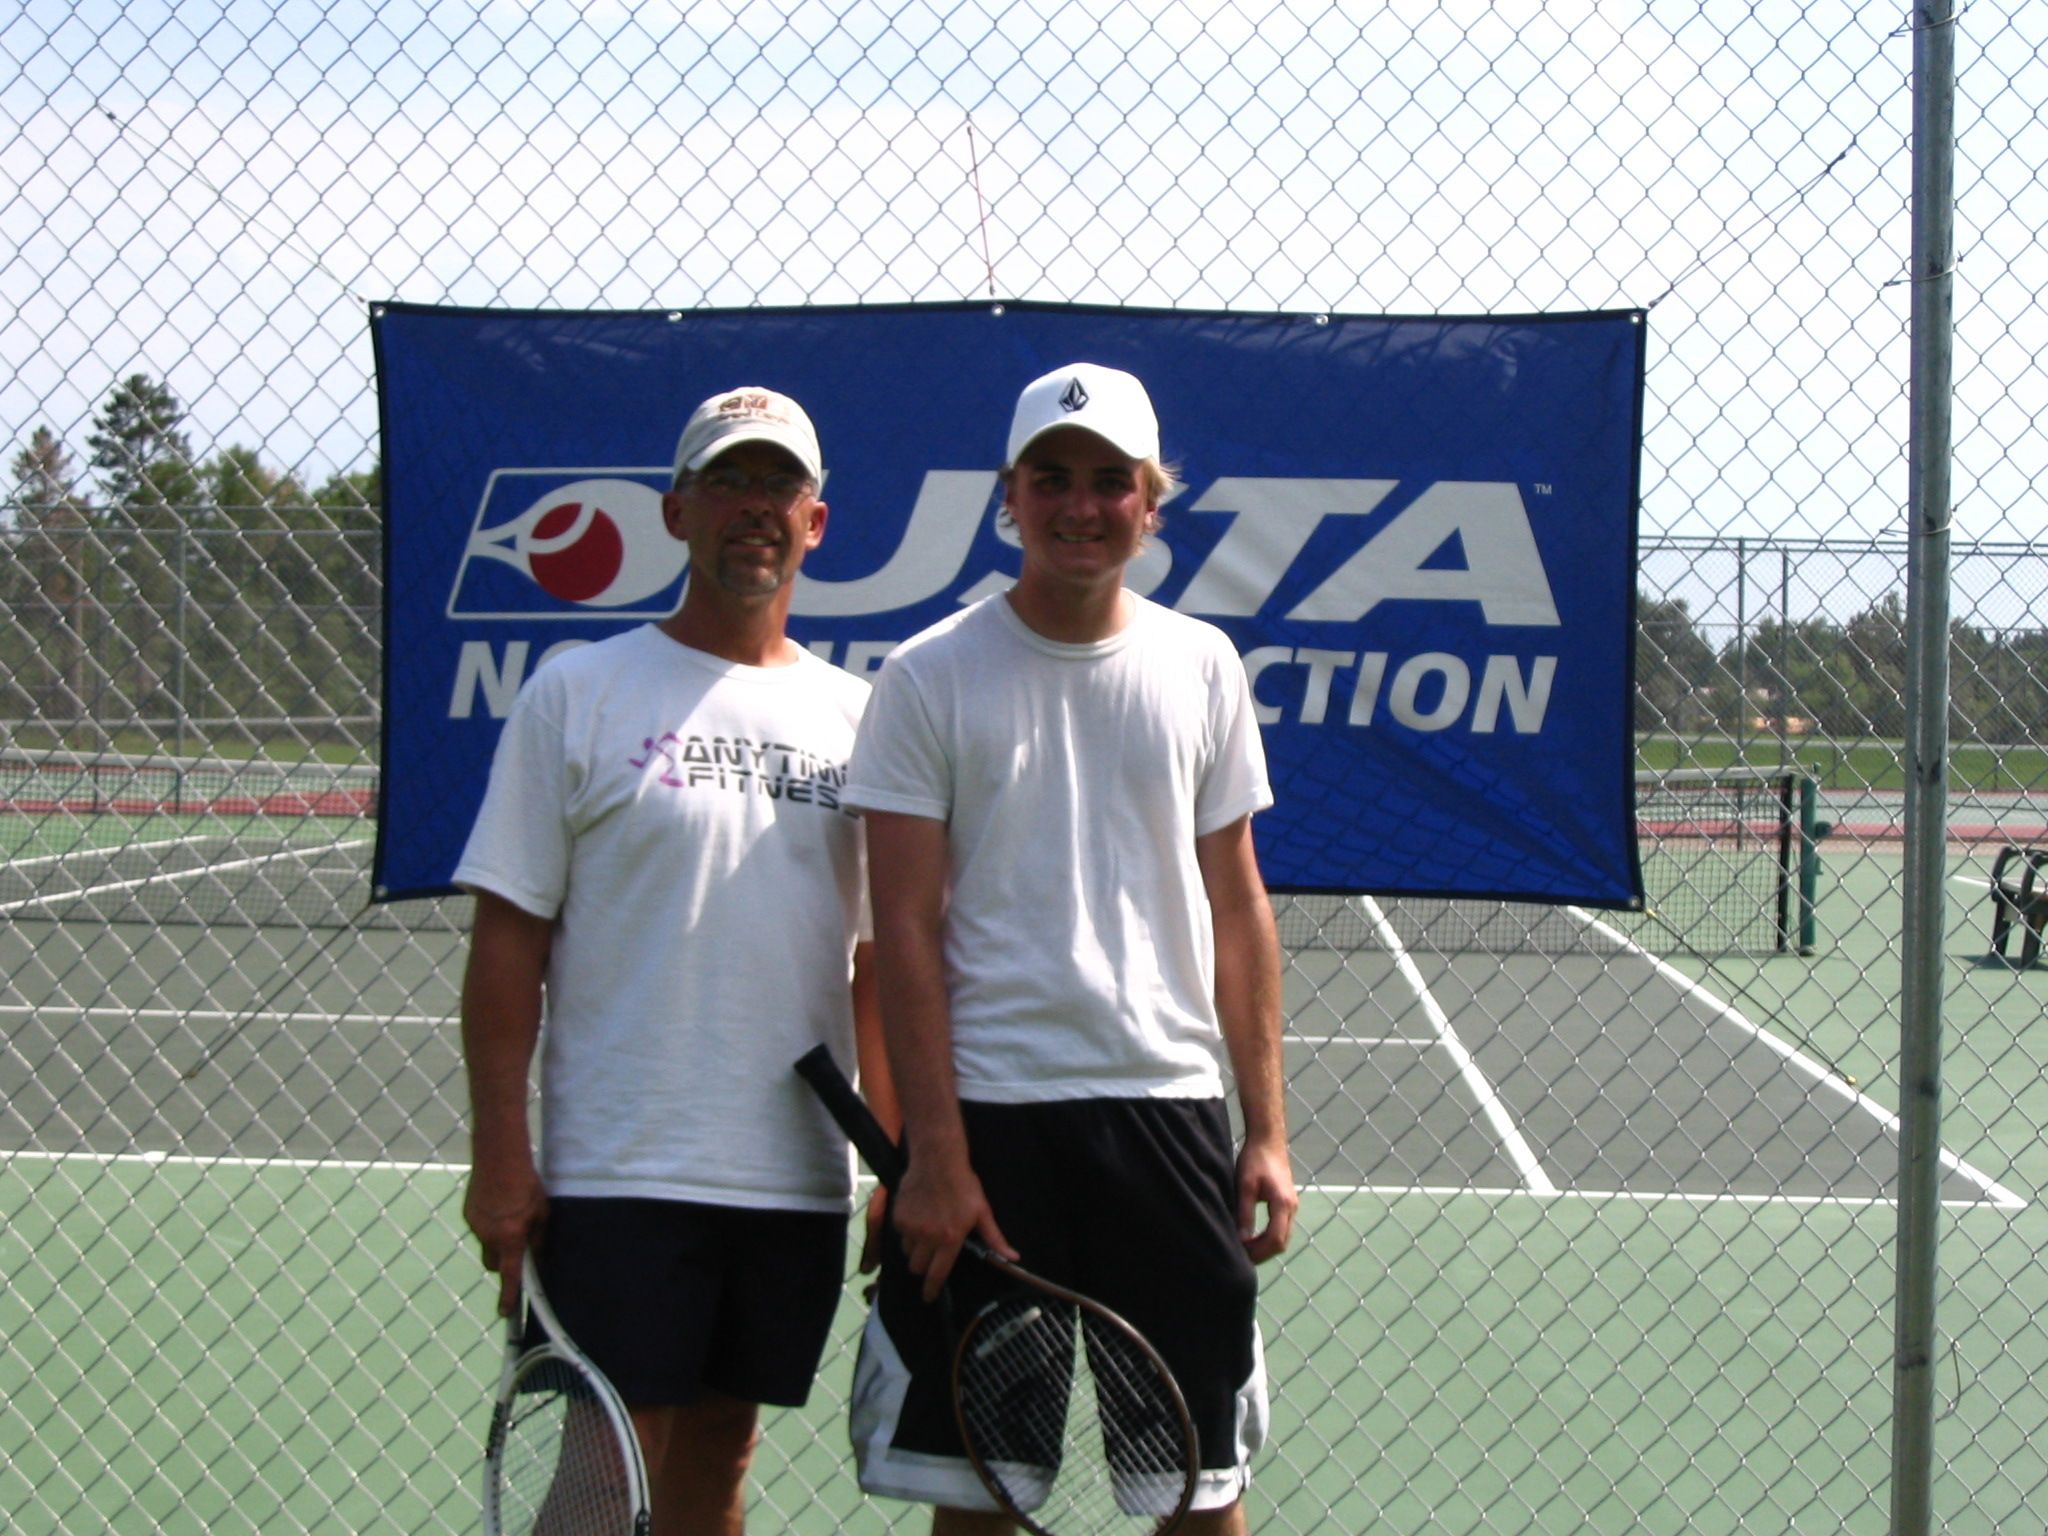 '06 Paul Bunyan Open 3.5 & Below Men's Doubles Champs